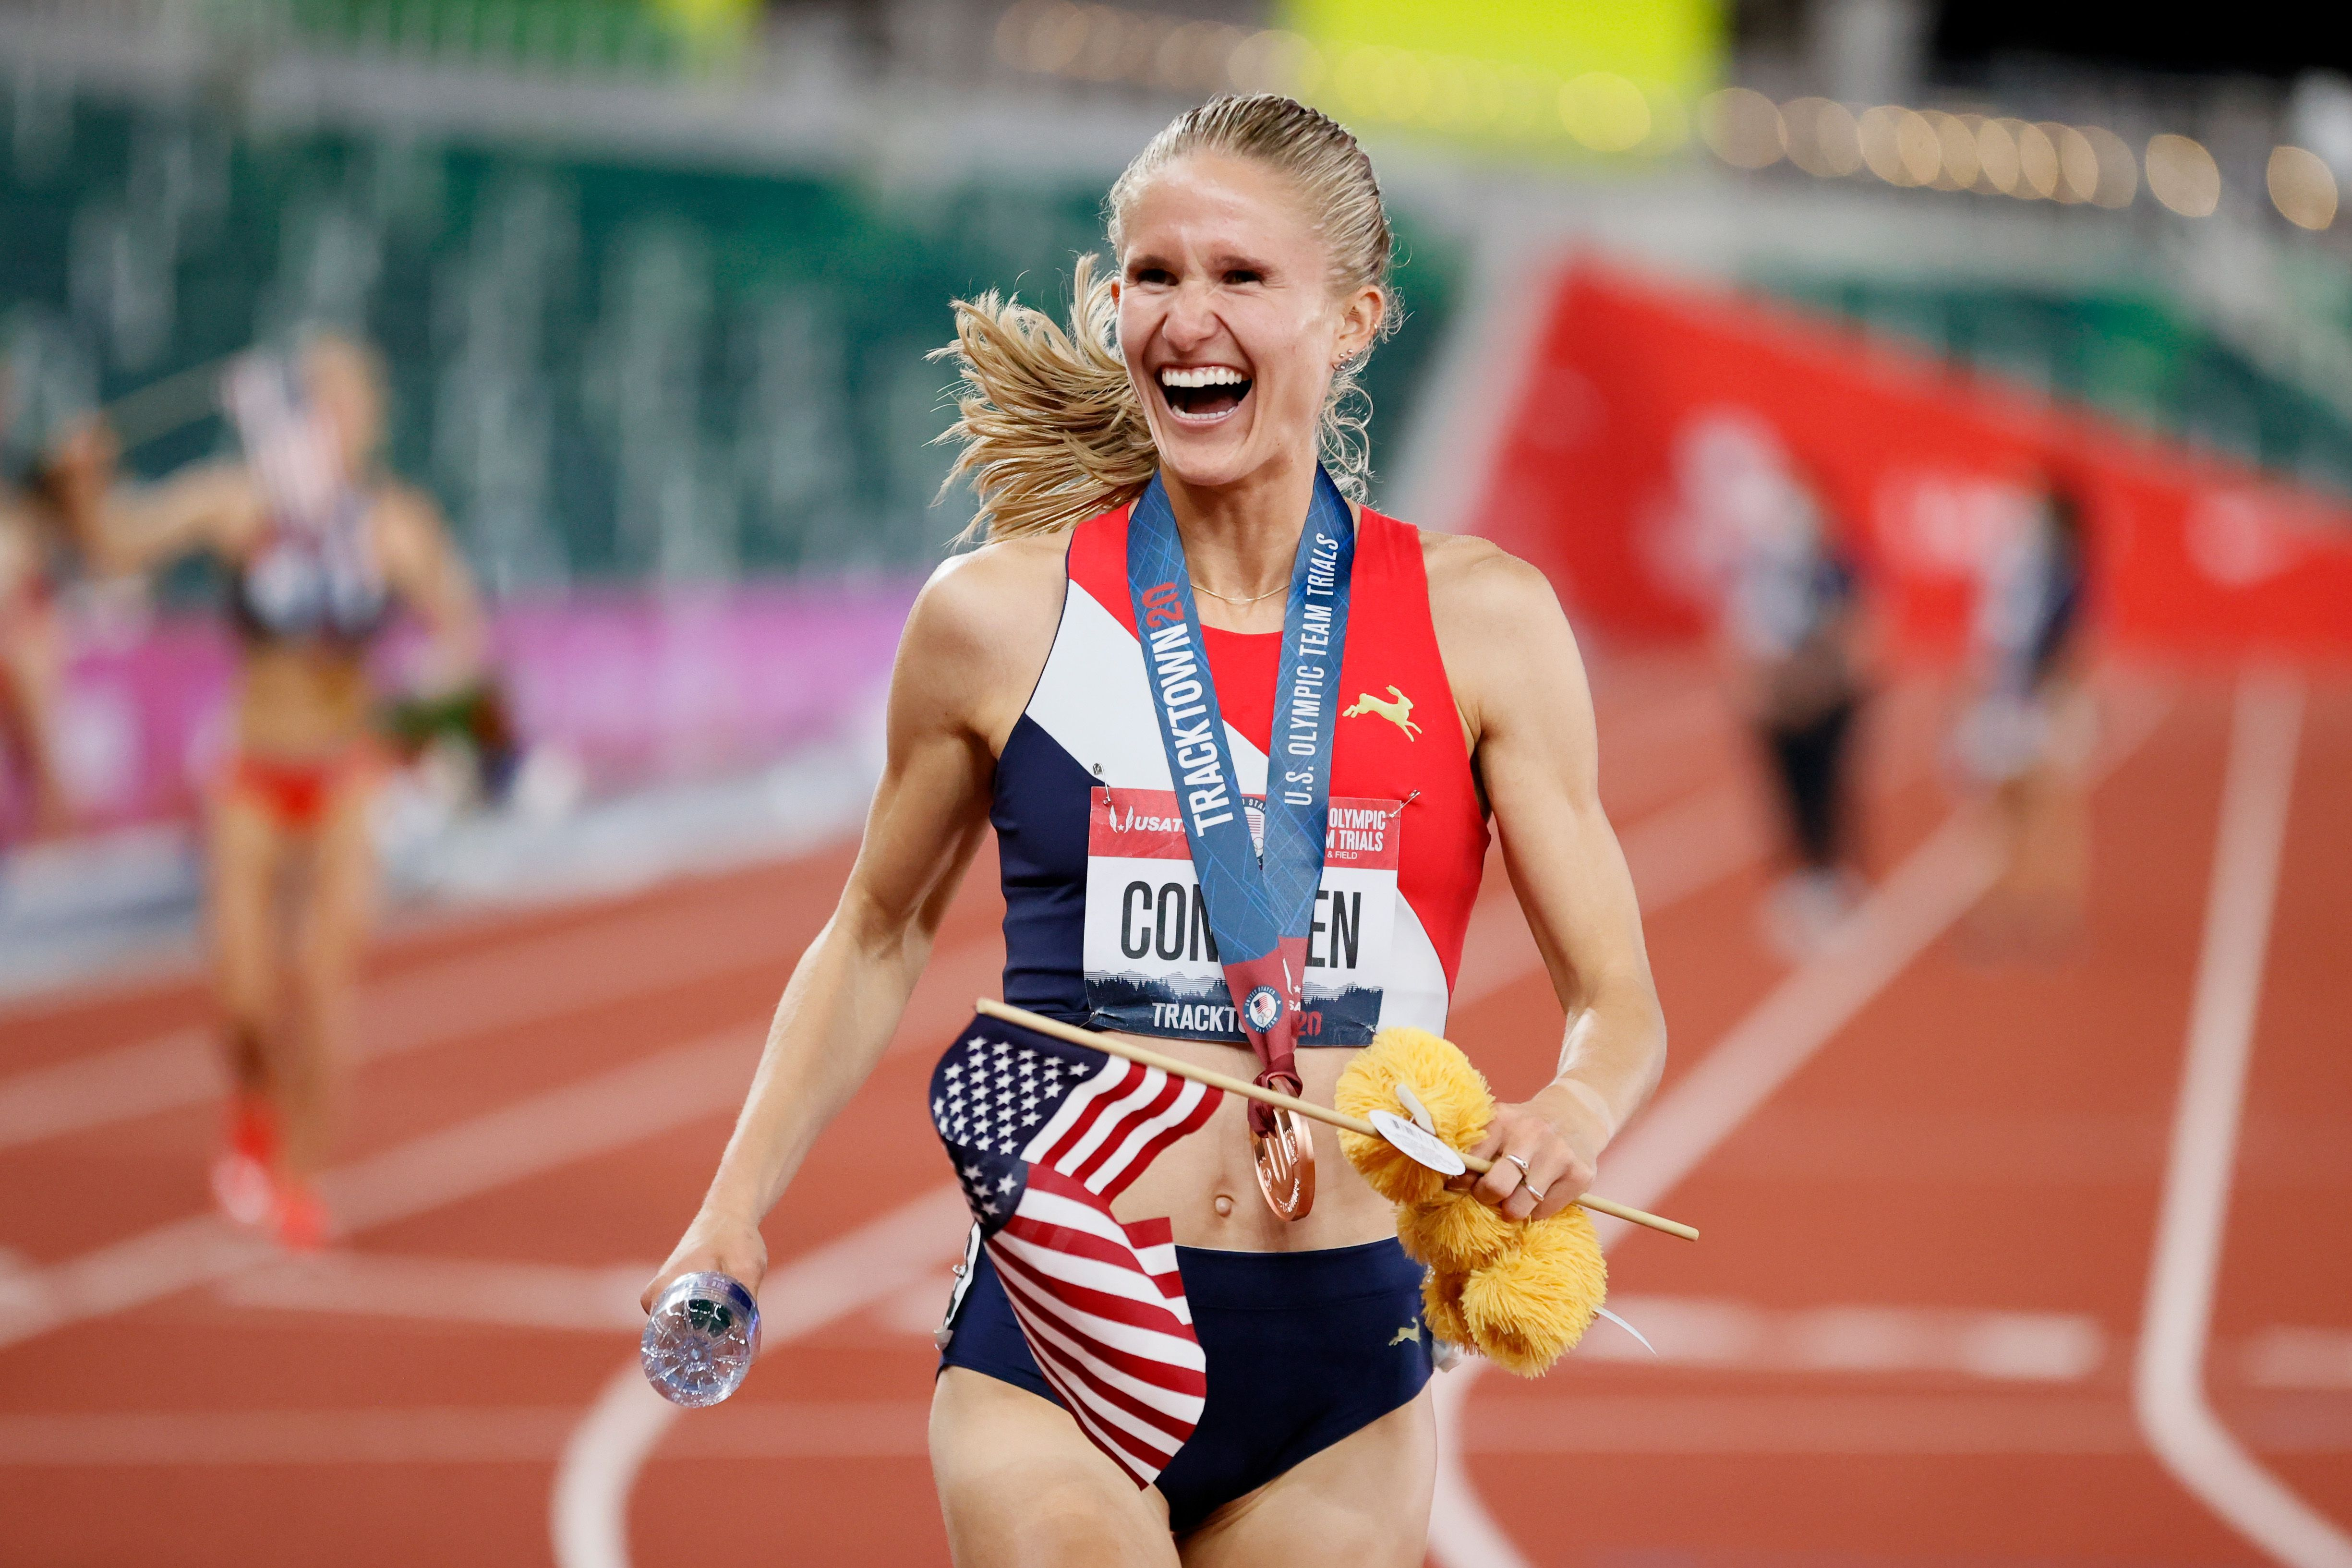 Val Constien reacts after competing in June in the U.S. Olympic trials in Oregon. Photo: Steph Chambers/Getty Images